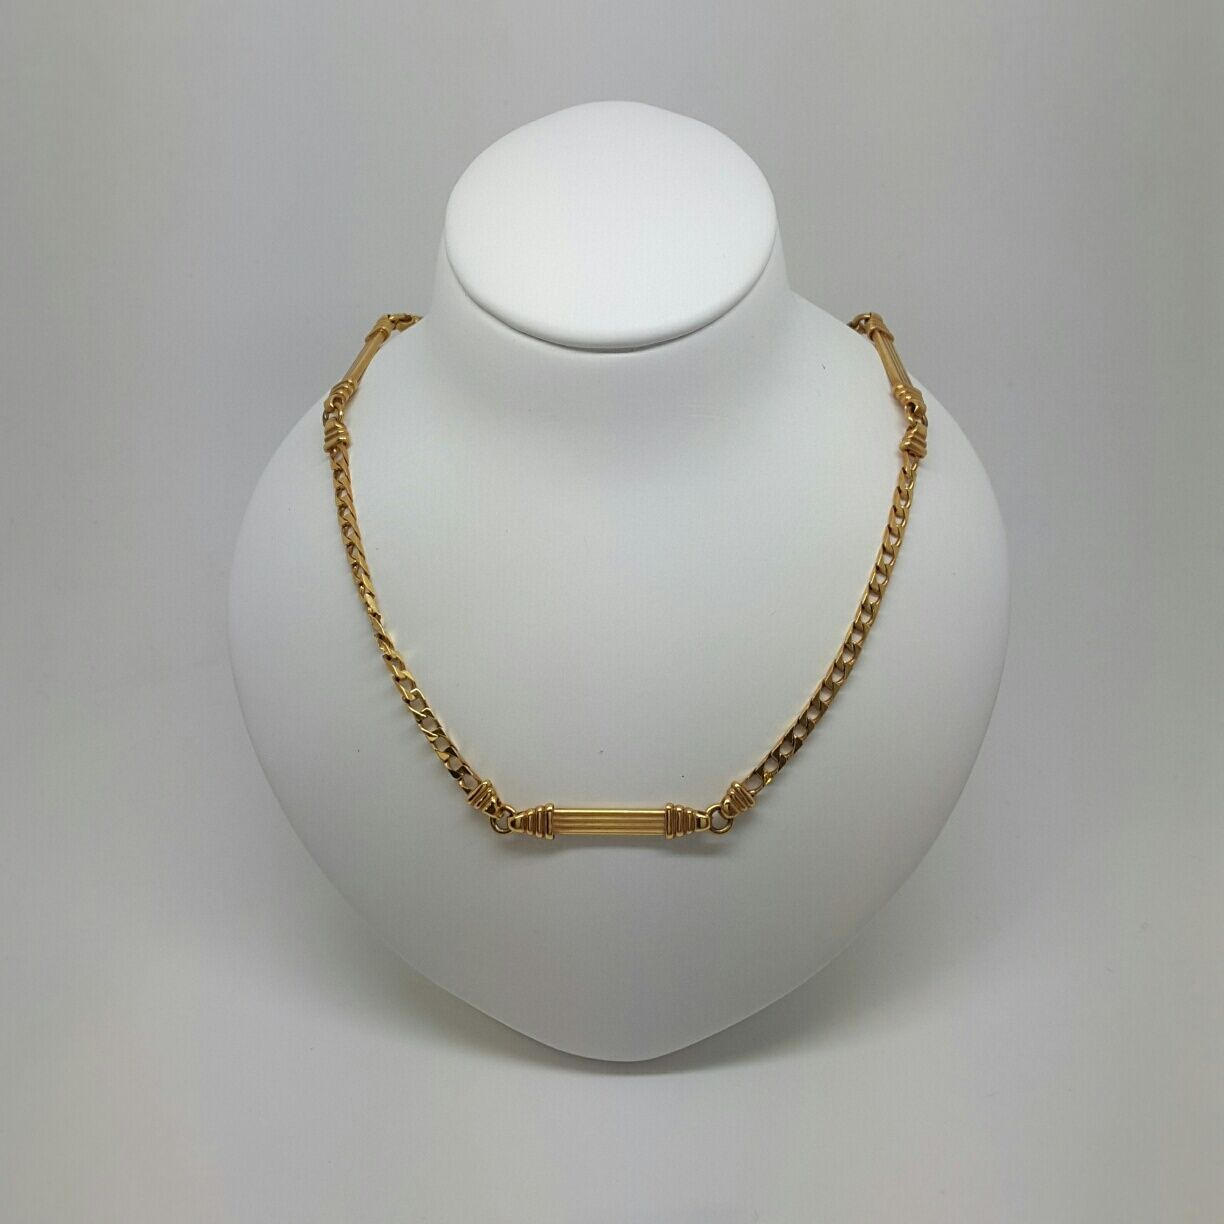 Miran 081048 Solid gold Chain 9ct Curb with Solid Bars 50cm 13.1g RRP  1200